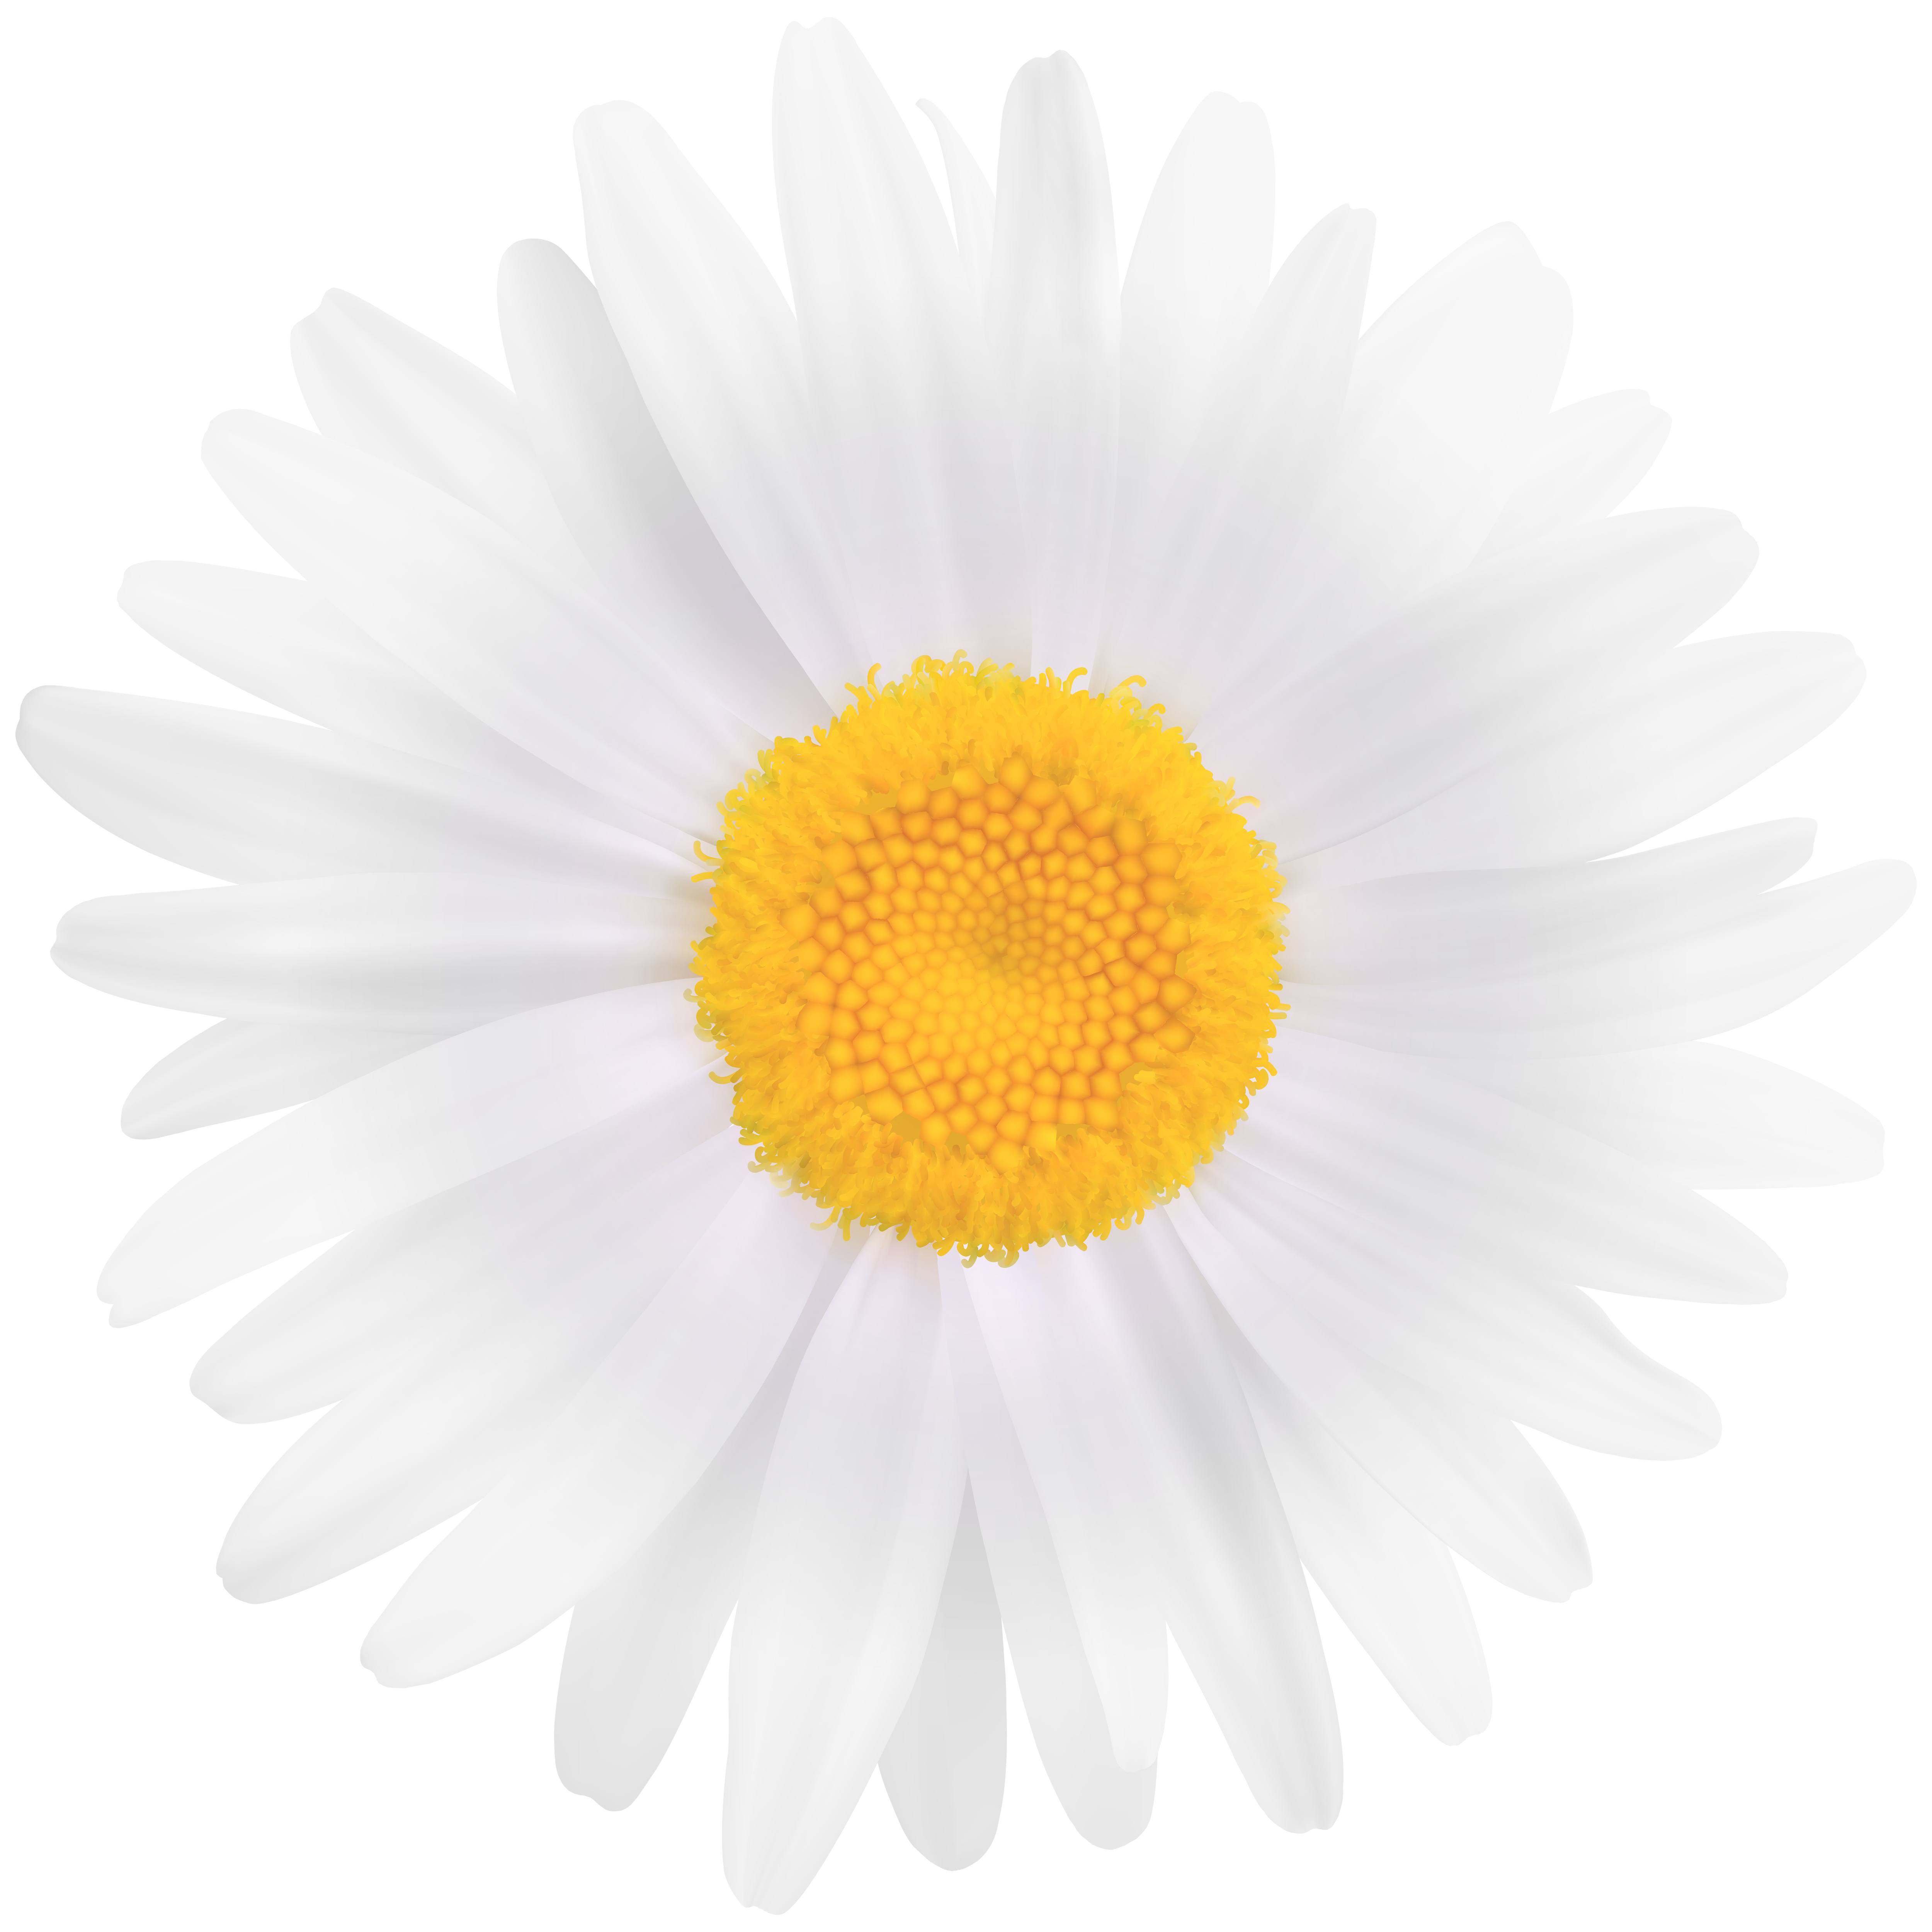 White Daisy Flower PNG Clipart Image.